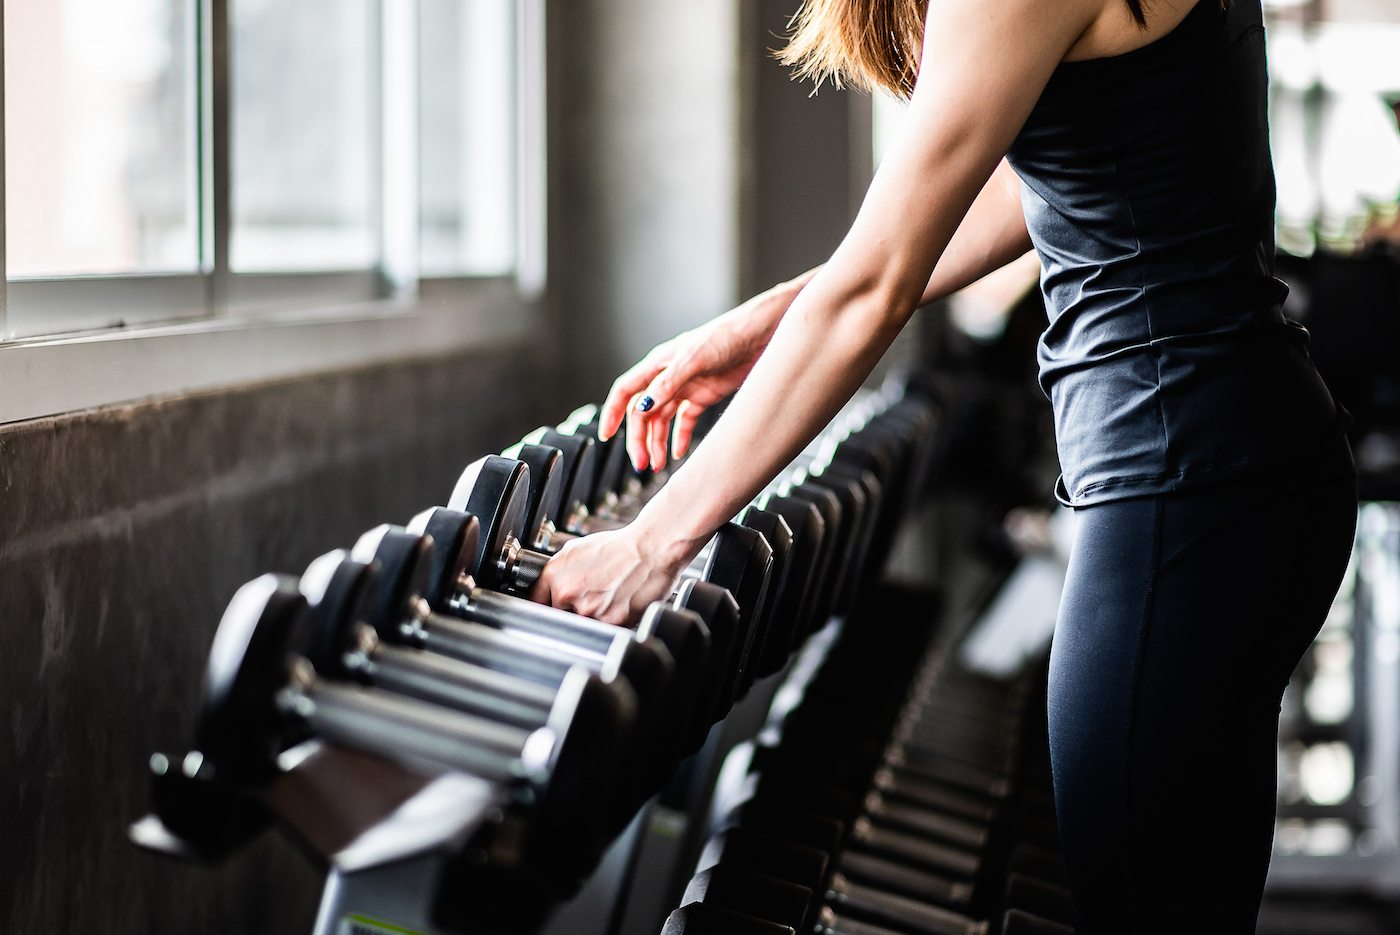 Thumbnail for How increasing weights by just 5 pounds can seriously up your fitness game